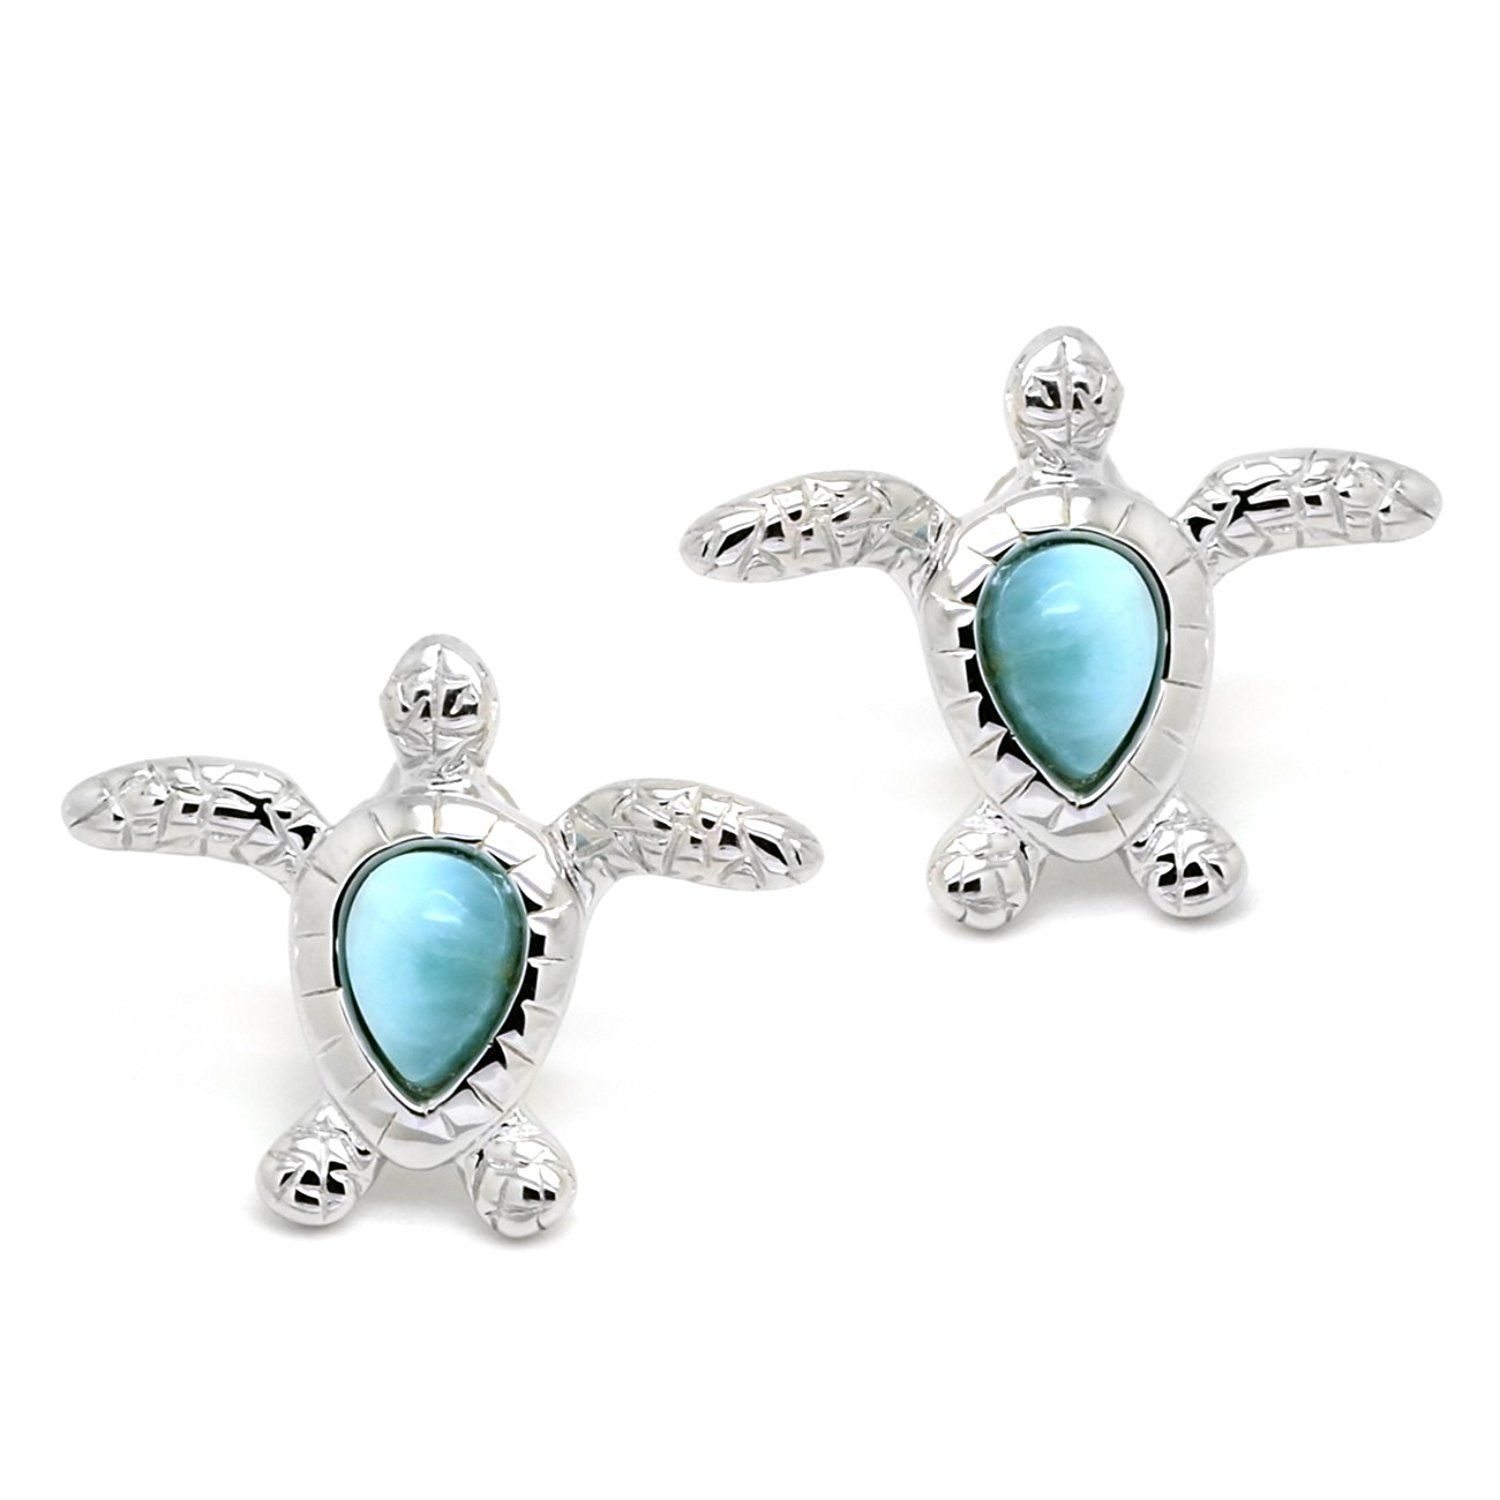 stud jewelry silver collections earrings for gift sterling sea blue women party turtle file natural fine products opal